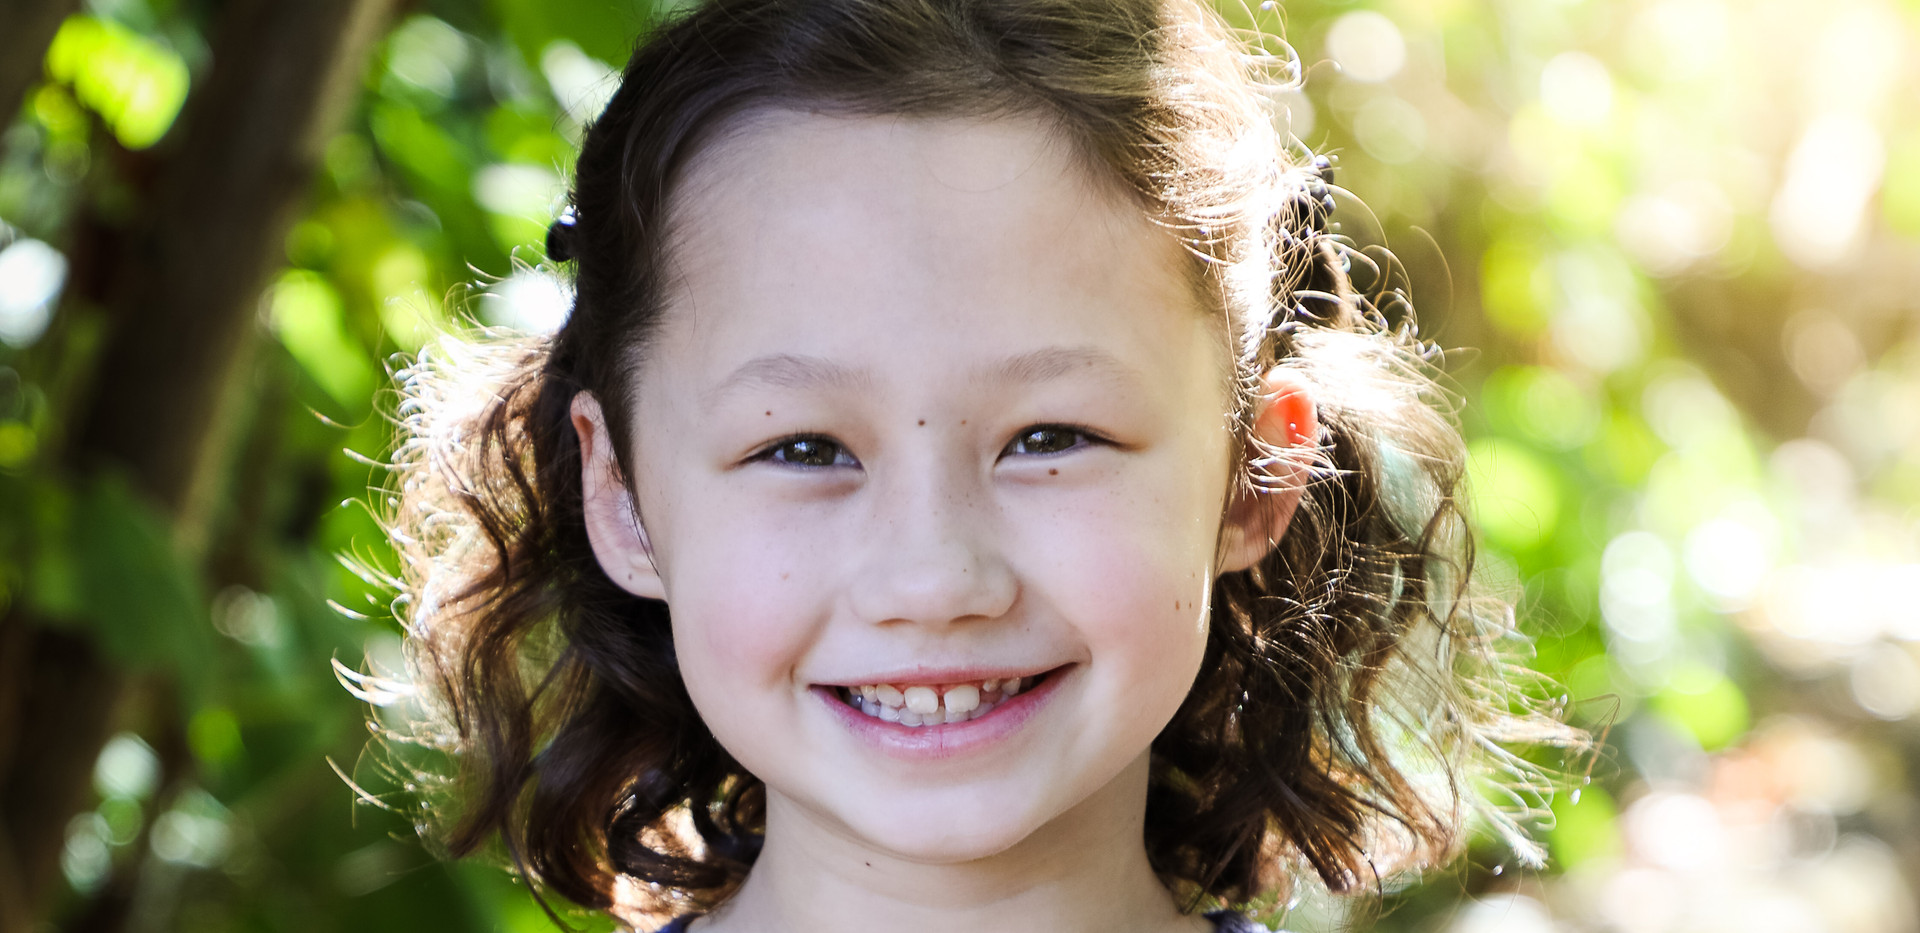 kid portraits by professional photographer in Oakland Berkeley